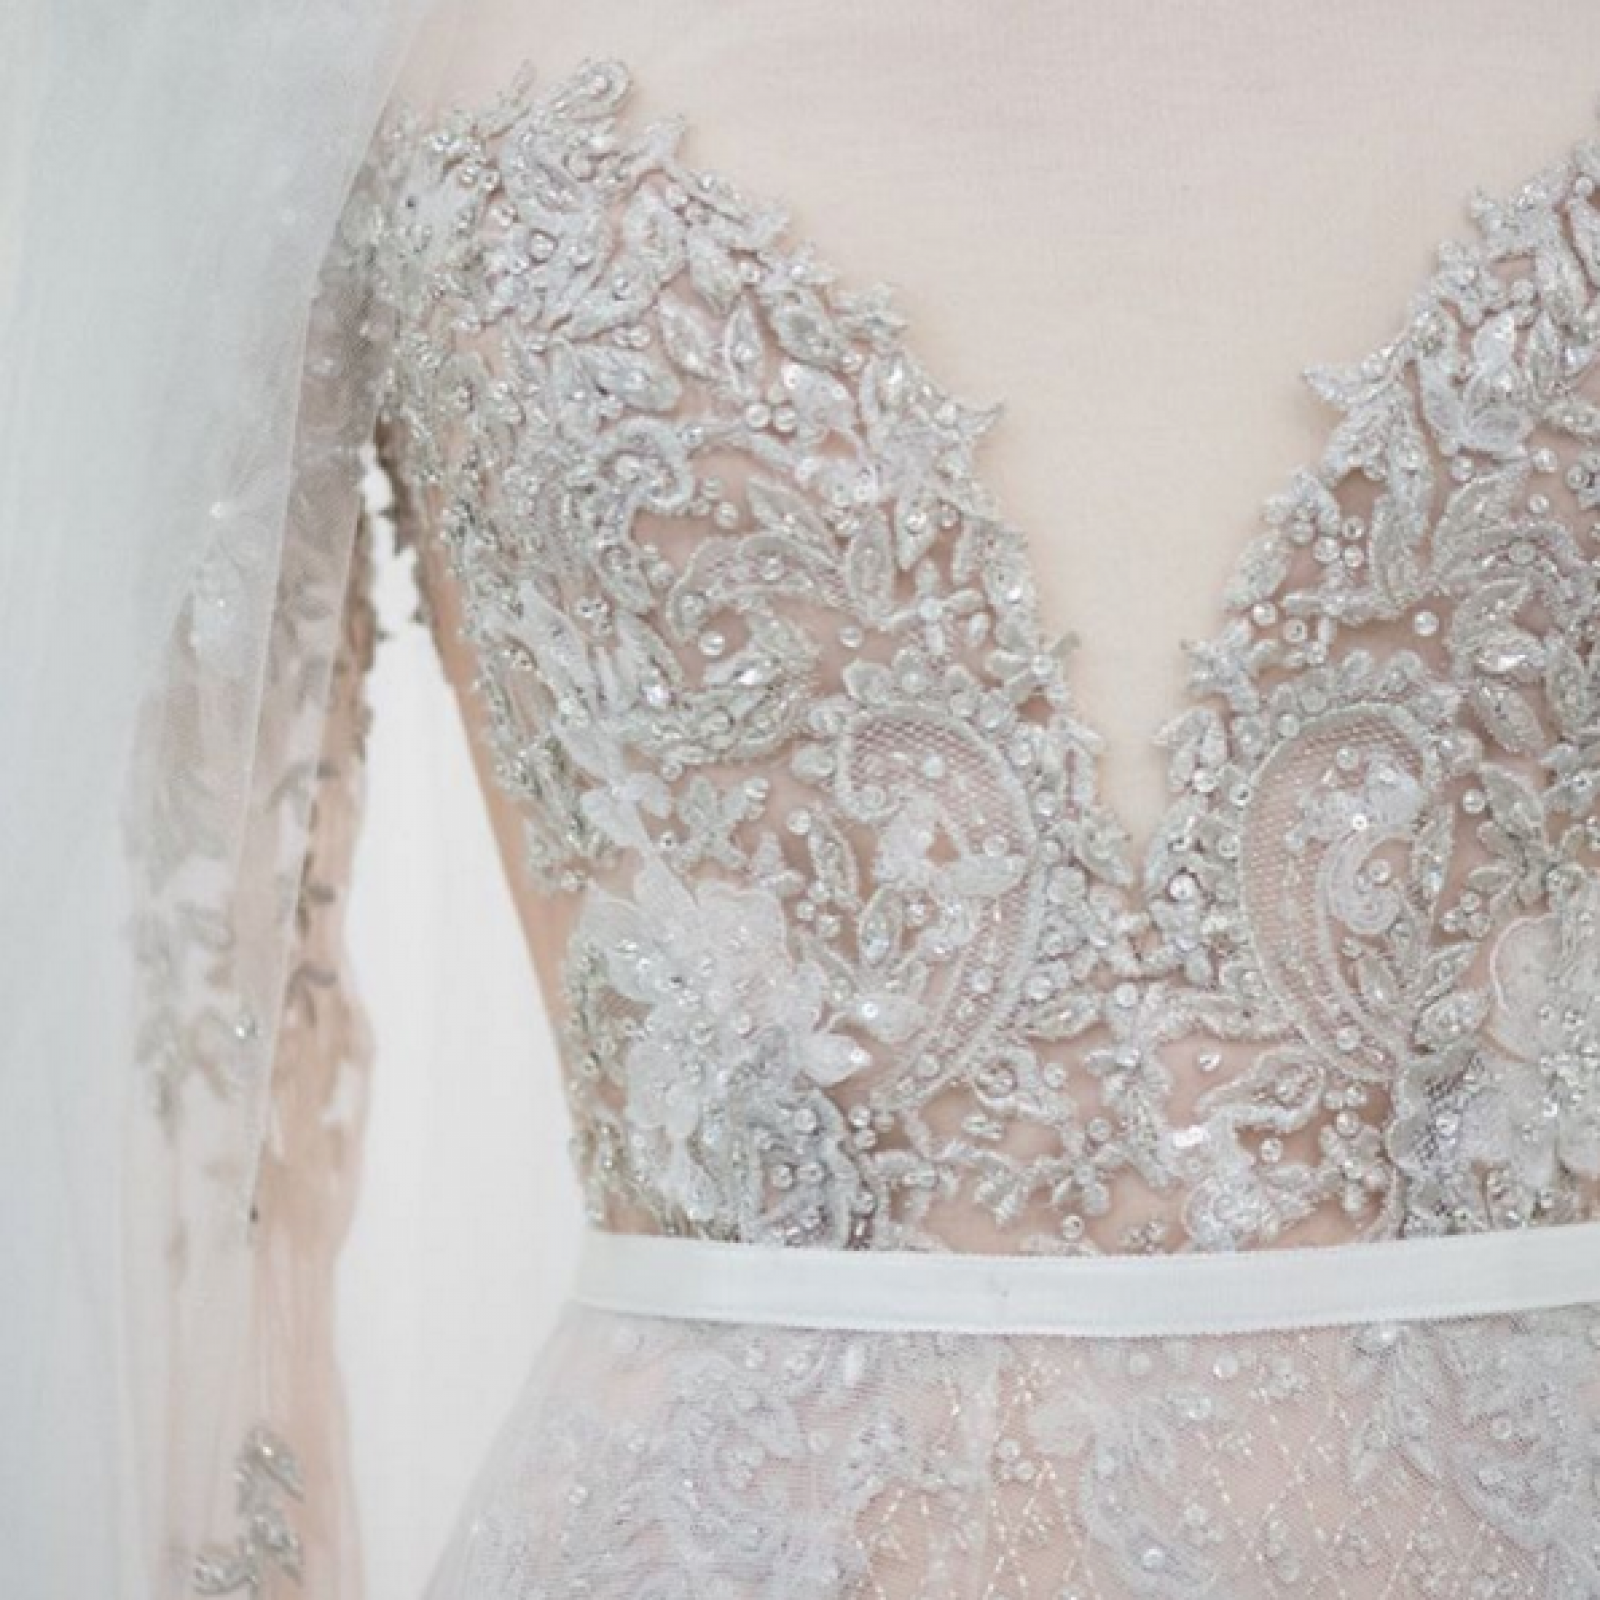 Wedding Gowns Indianapolis: Our Favorite Instagram Posts 3.4.16